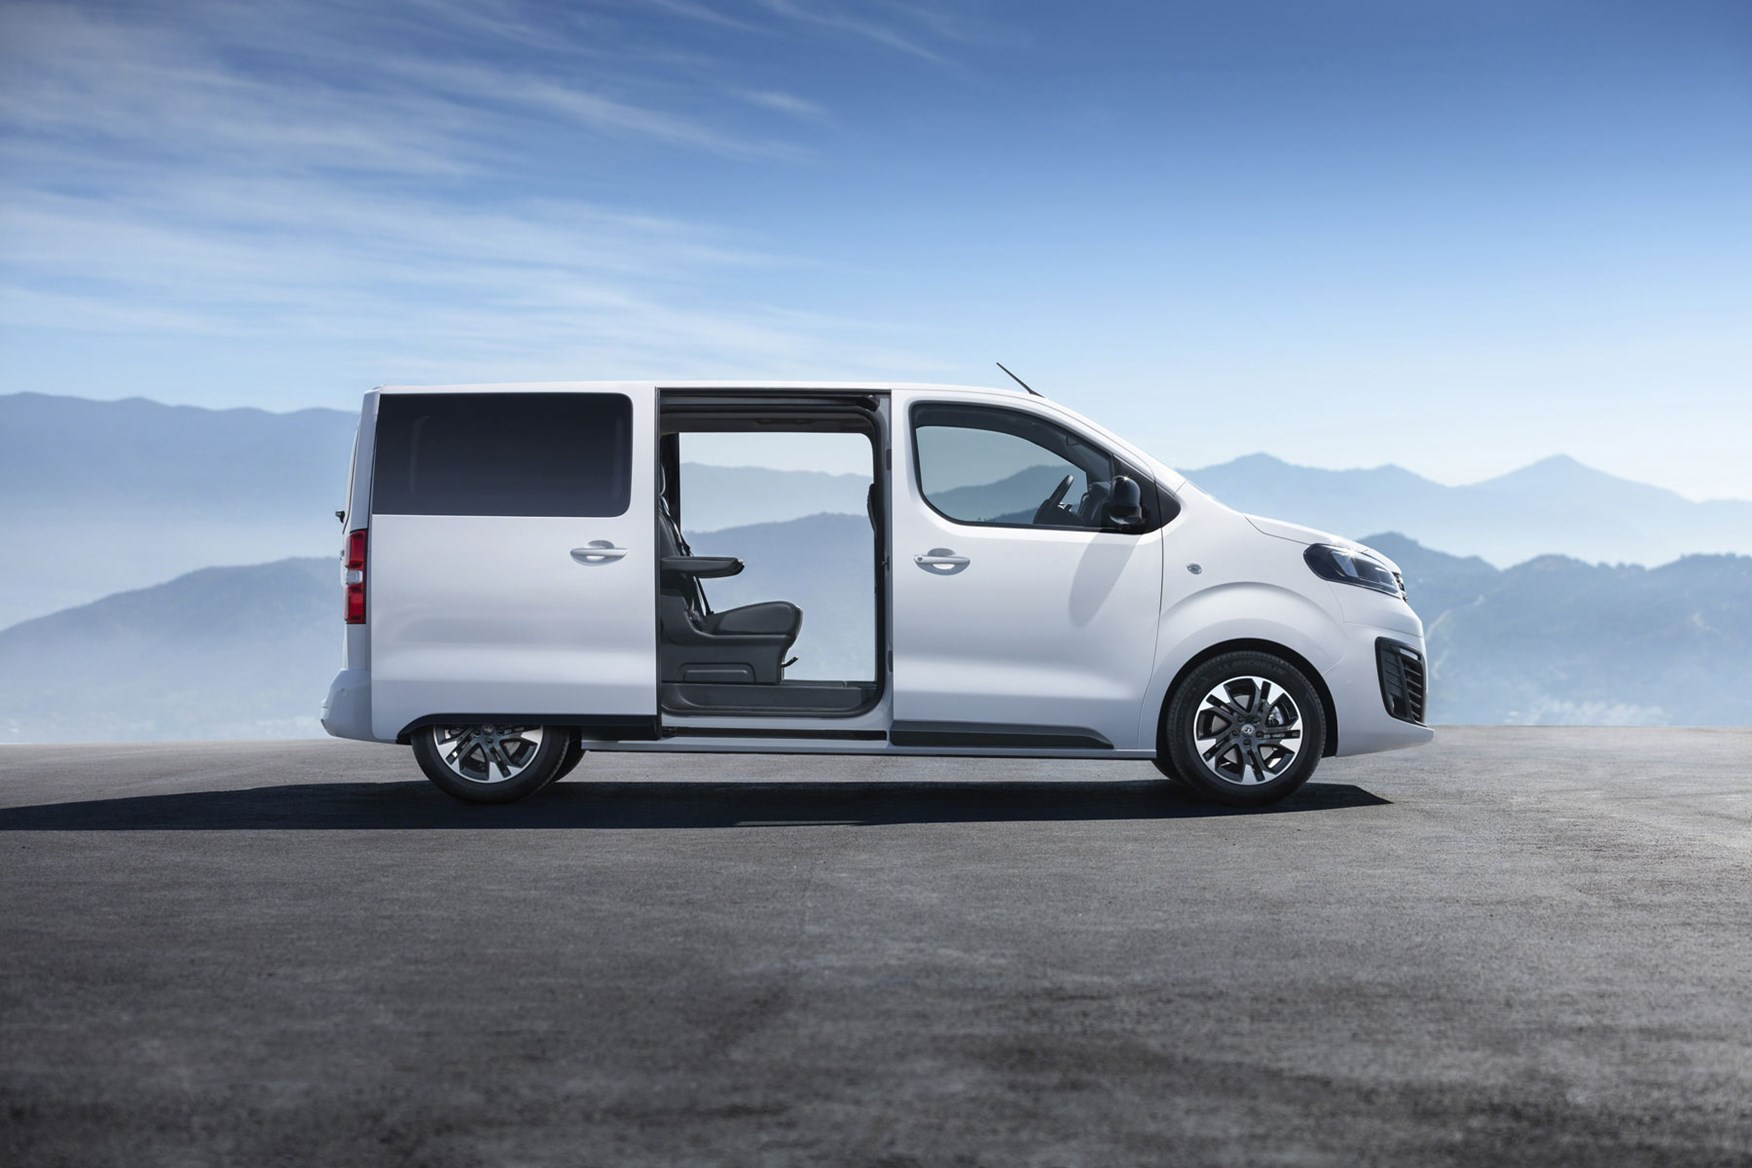 b98eb22828 ... All-new Vauxhall Vivaro on-sale in 2019 - side view